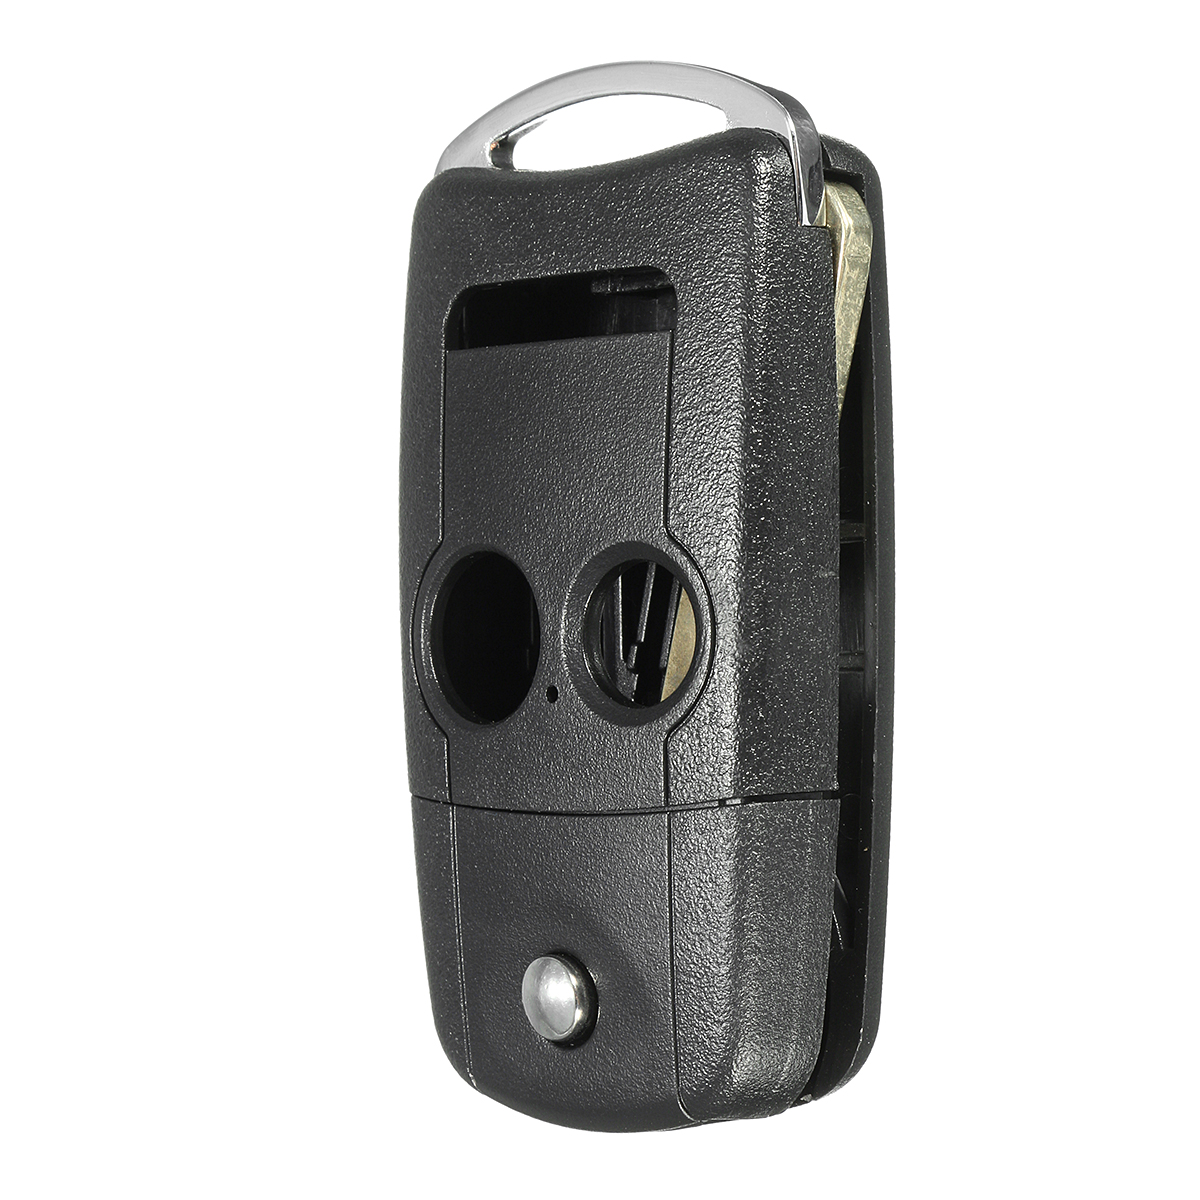 2+1 Buttons Folding Remote Key Shell Case For Acura TL TSX